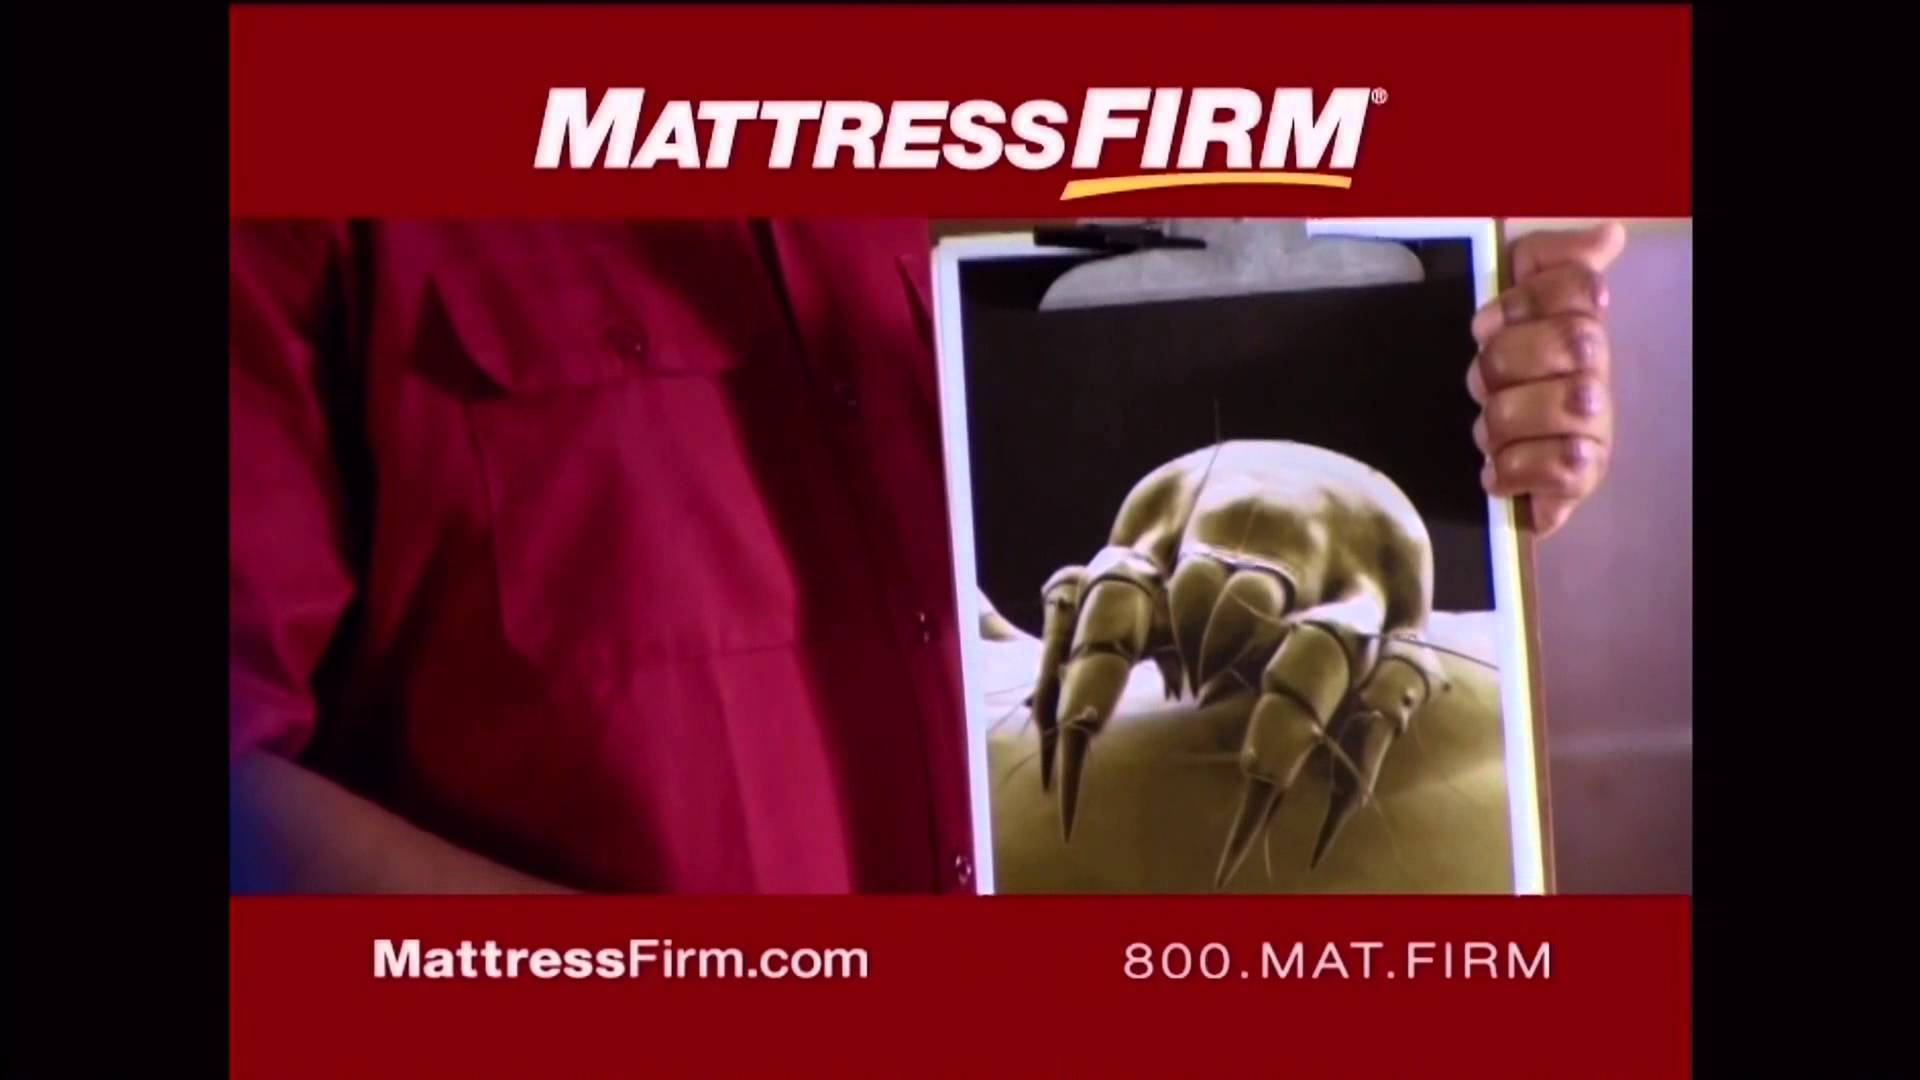 fired news firm two colliers retail broker next says real in img deals encouraged mattress to locations execs door national com estate each insider weaponized former other houston